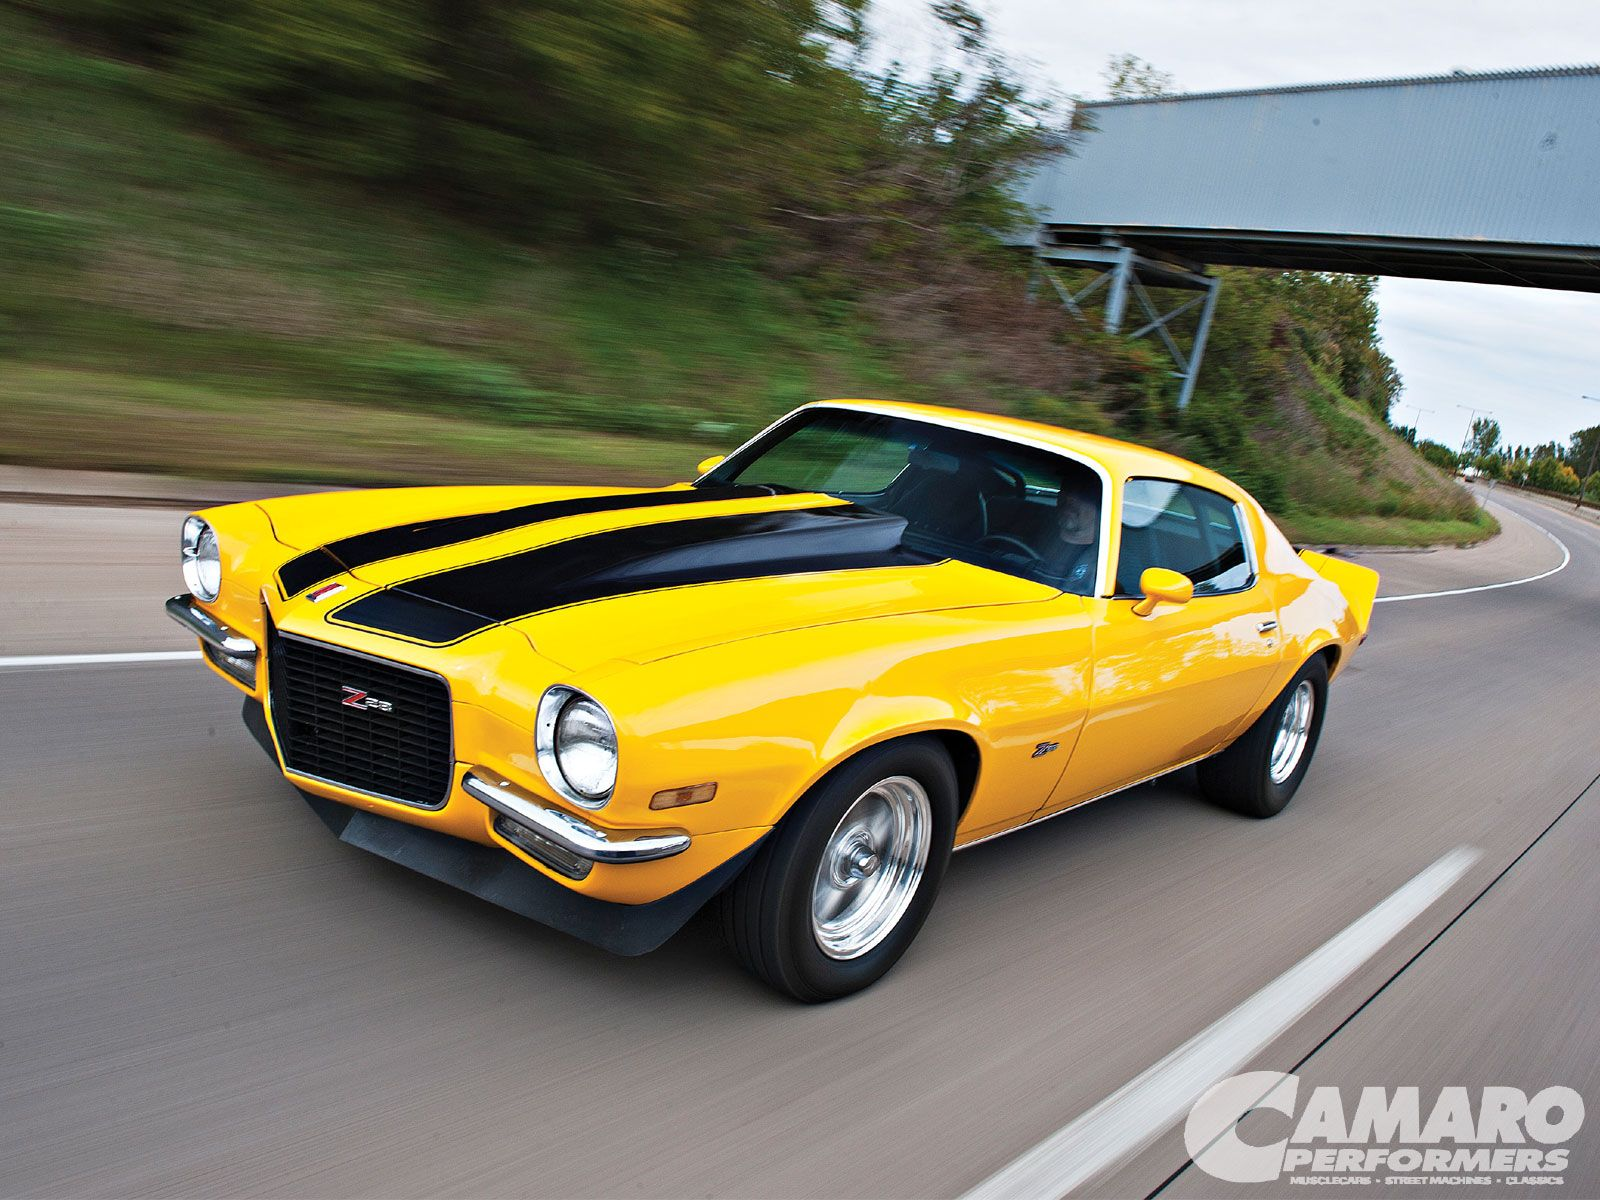 Z28 camaro wallpaper download free http hdcarwallfx - Camaro z28 ...